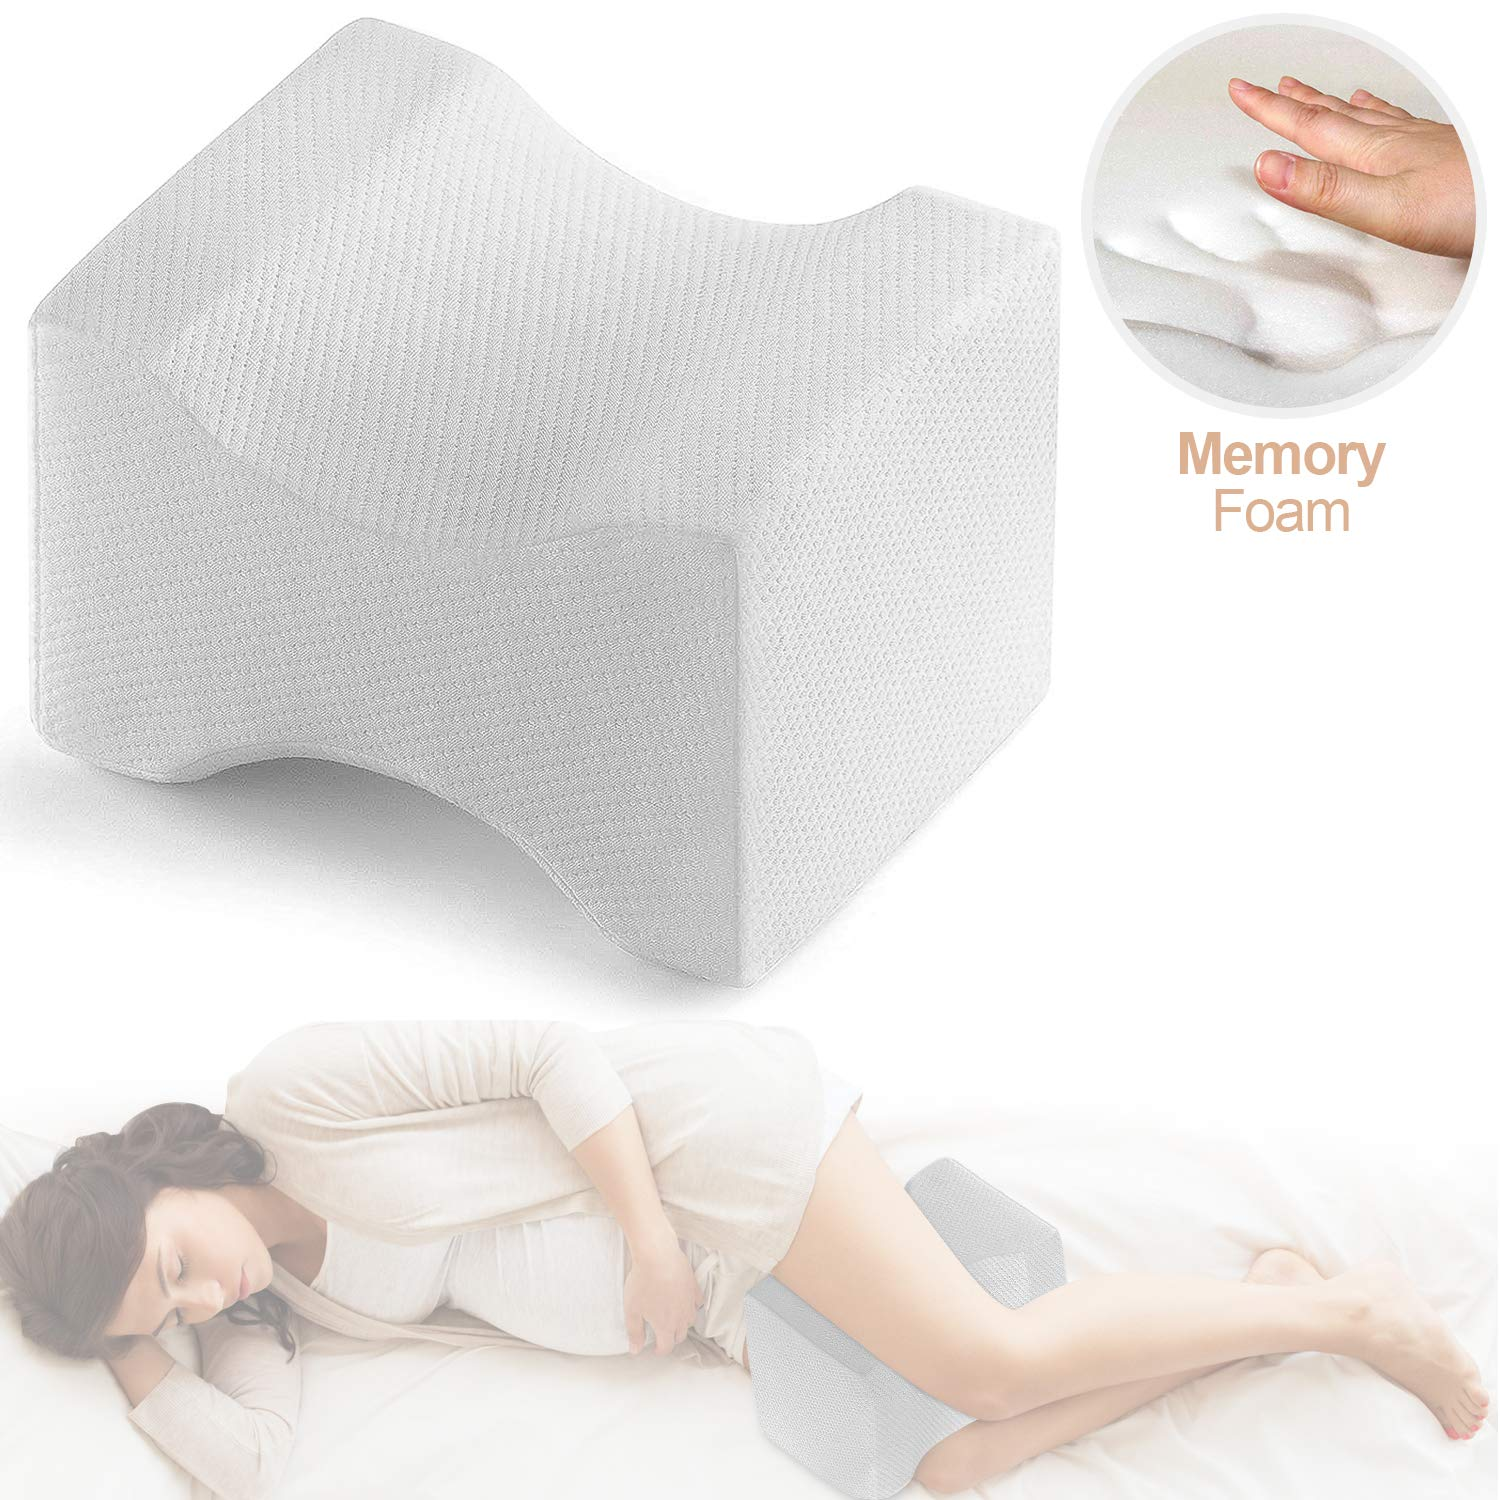 Leg Positioner Knee Pillow - Made from High Quality Memory Foam - Removable and Washable Cover - Promotes Better Sleep, Improve Blood Circulation & Proper Posture Alignment Trademark Supplies